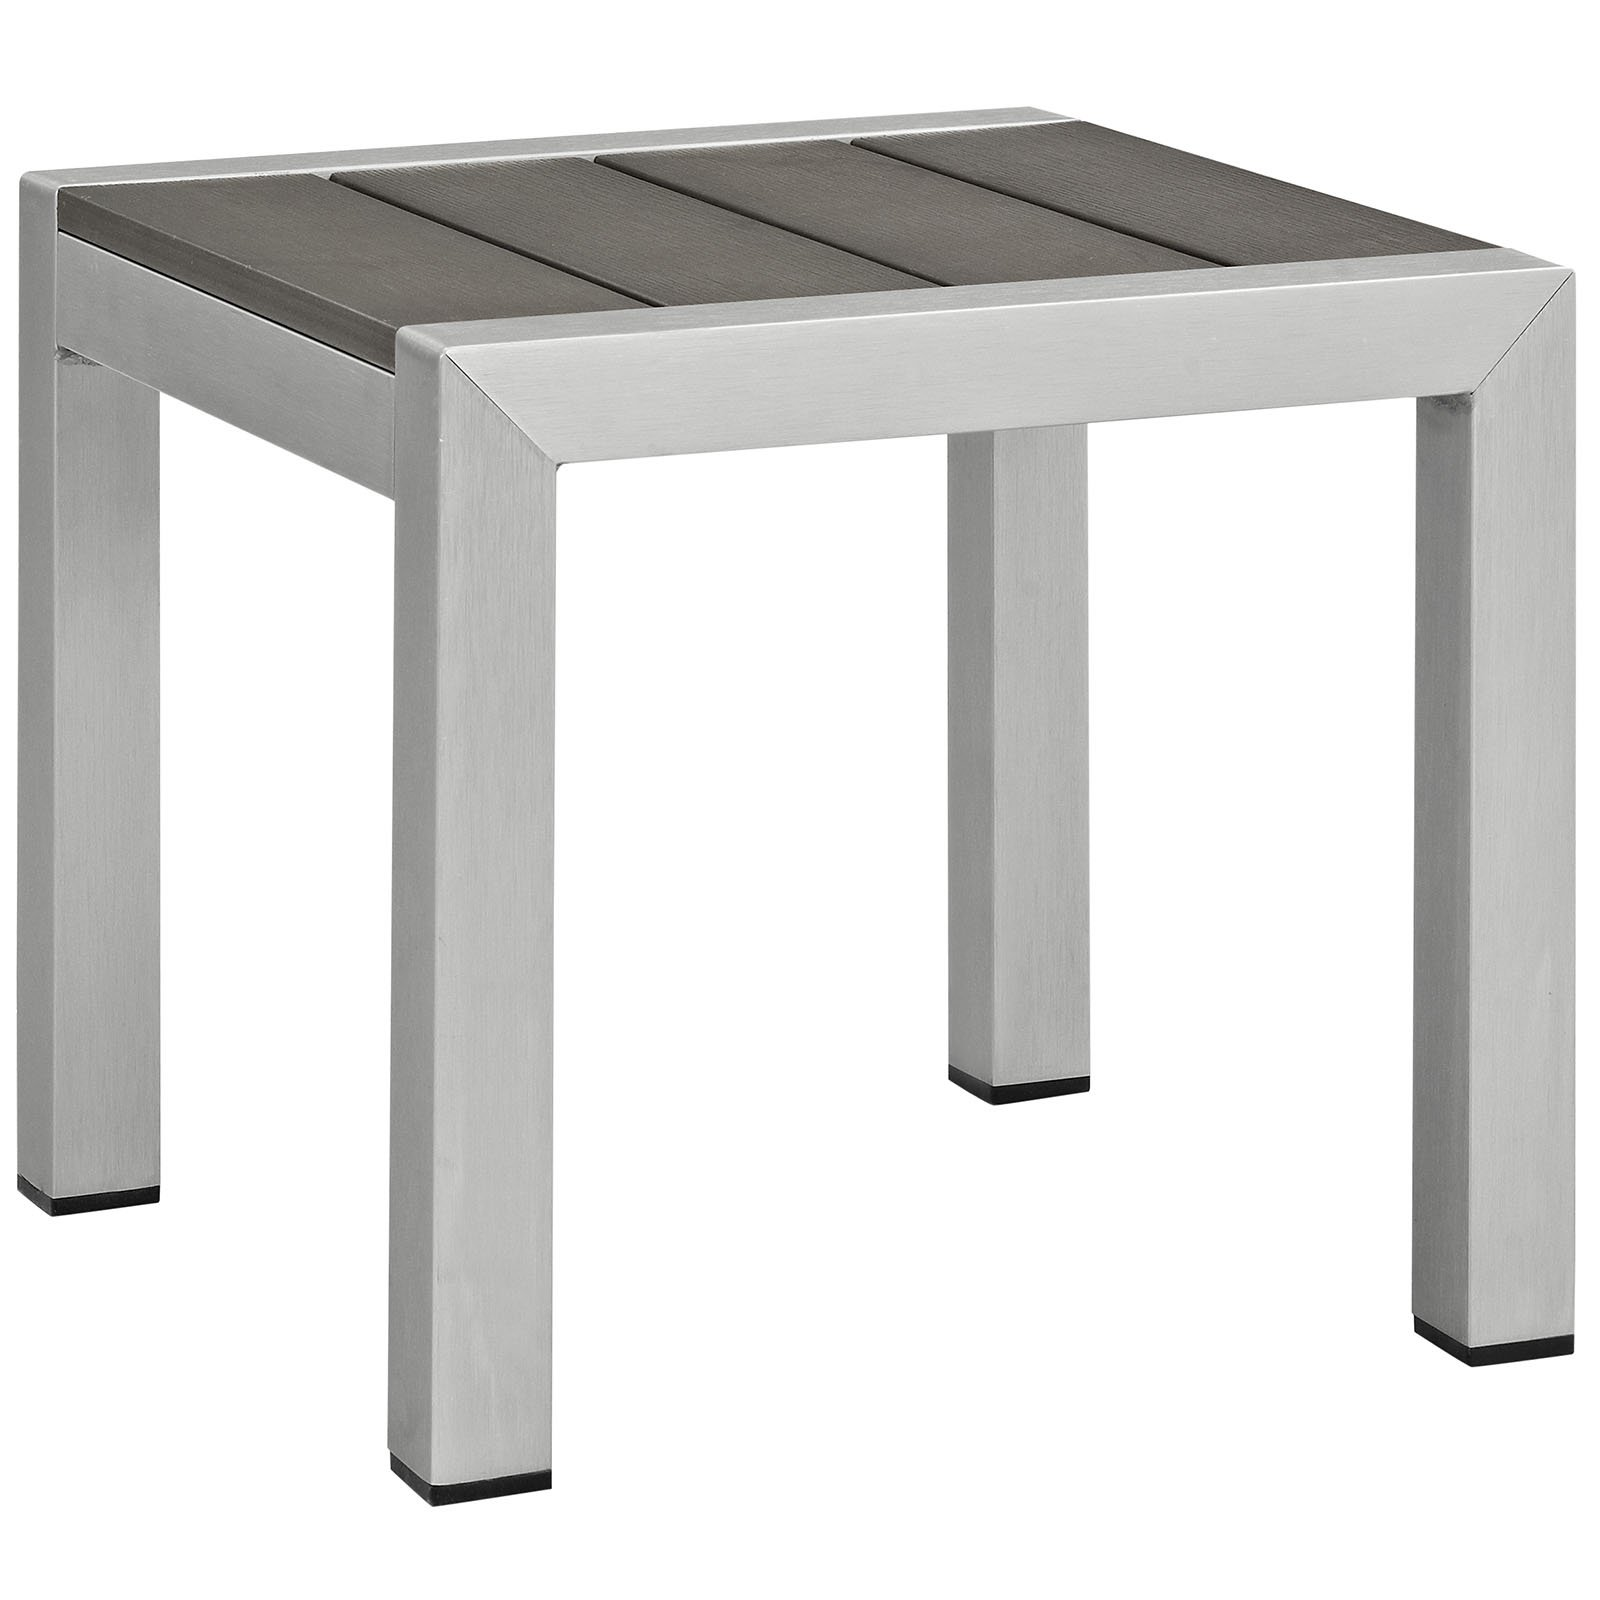 Modway Shore Aluminum Outdoor Patio Side Table in Silver Gray